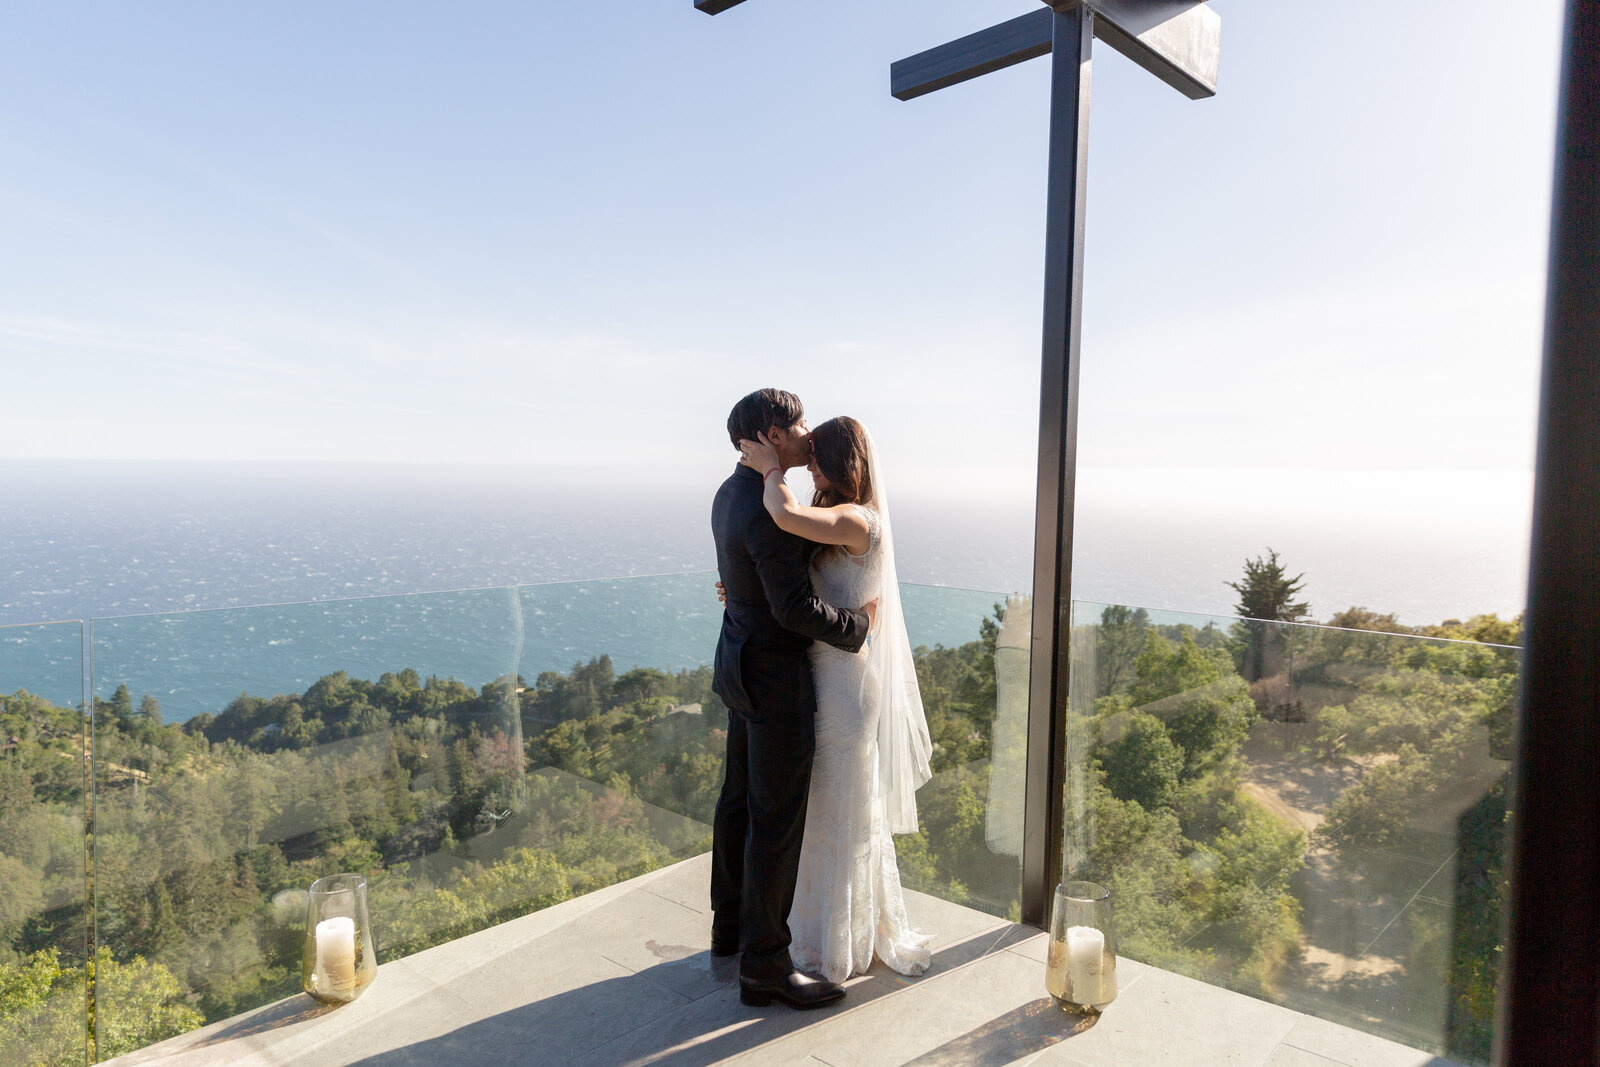 larissa-cleveland-elope-eleopement-intimate-wedding-photographer-san-francisco-napa-carmel-053